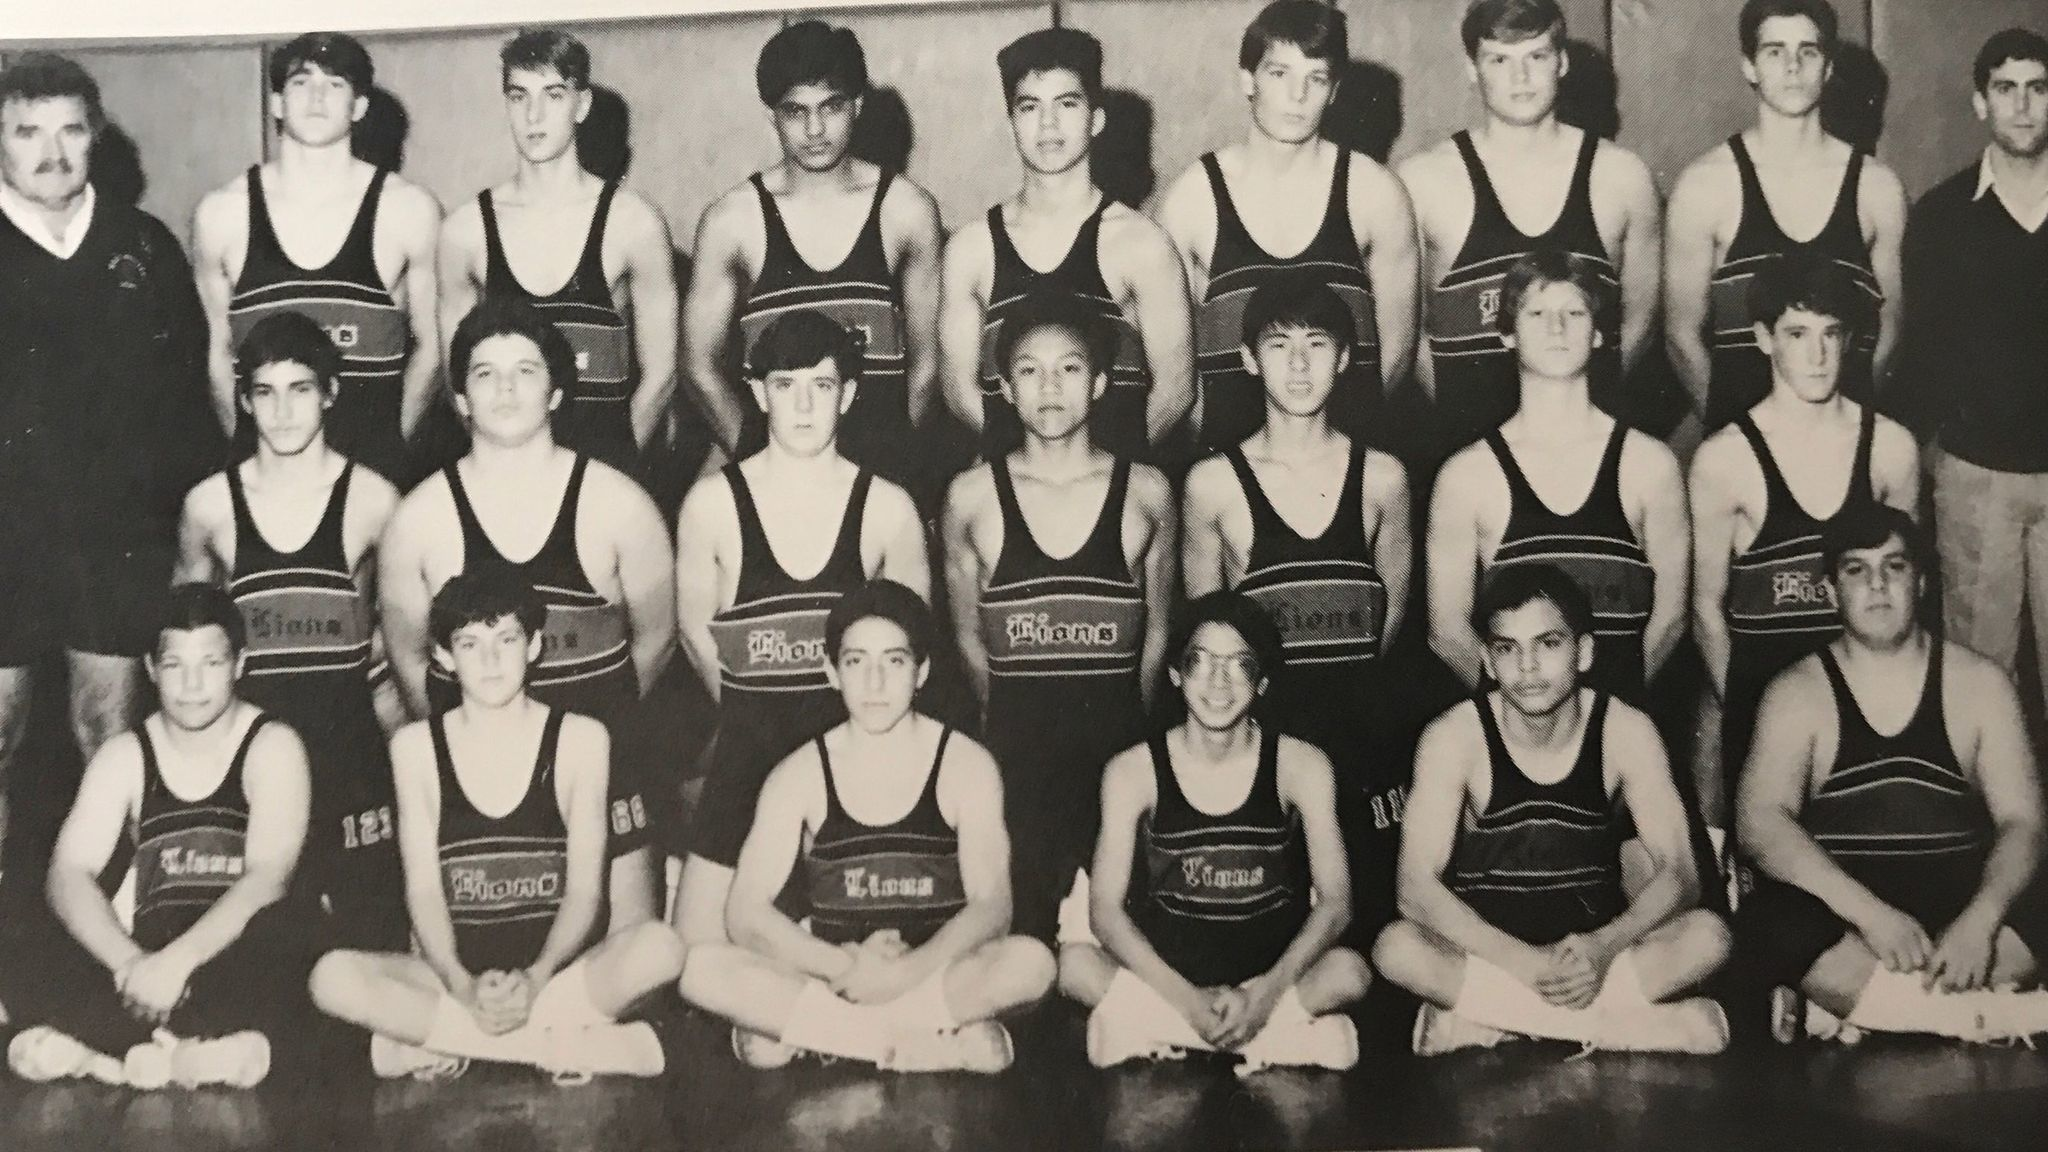 A team photo in the 1987 Westminster High School yearbook with Timothy Vu, center.